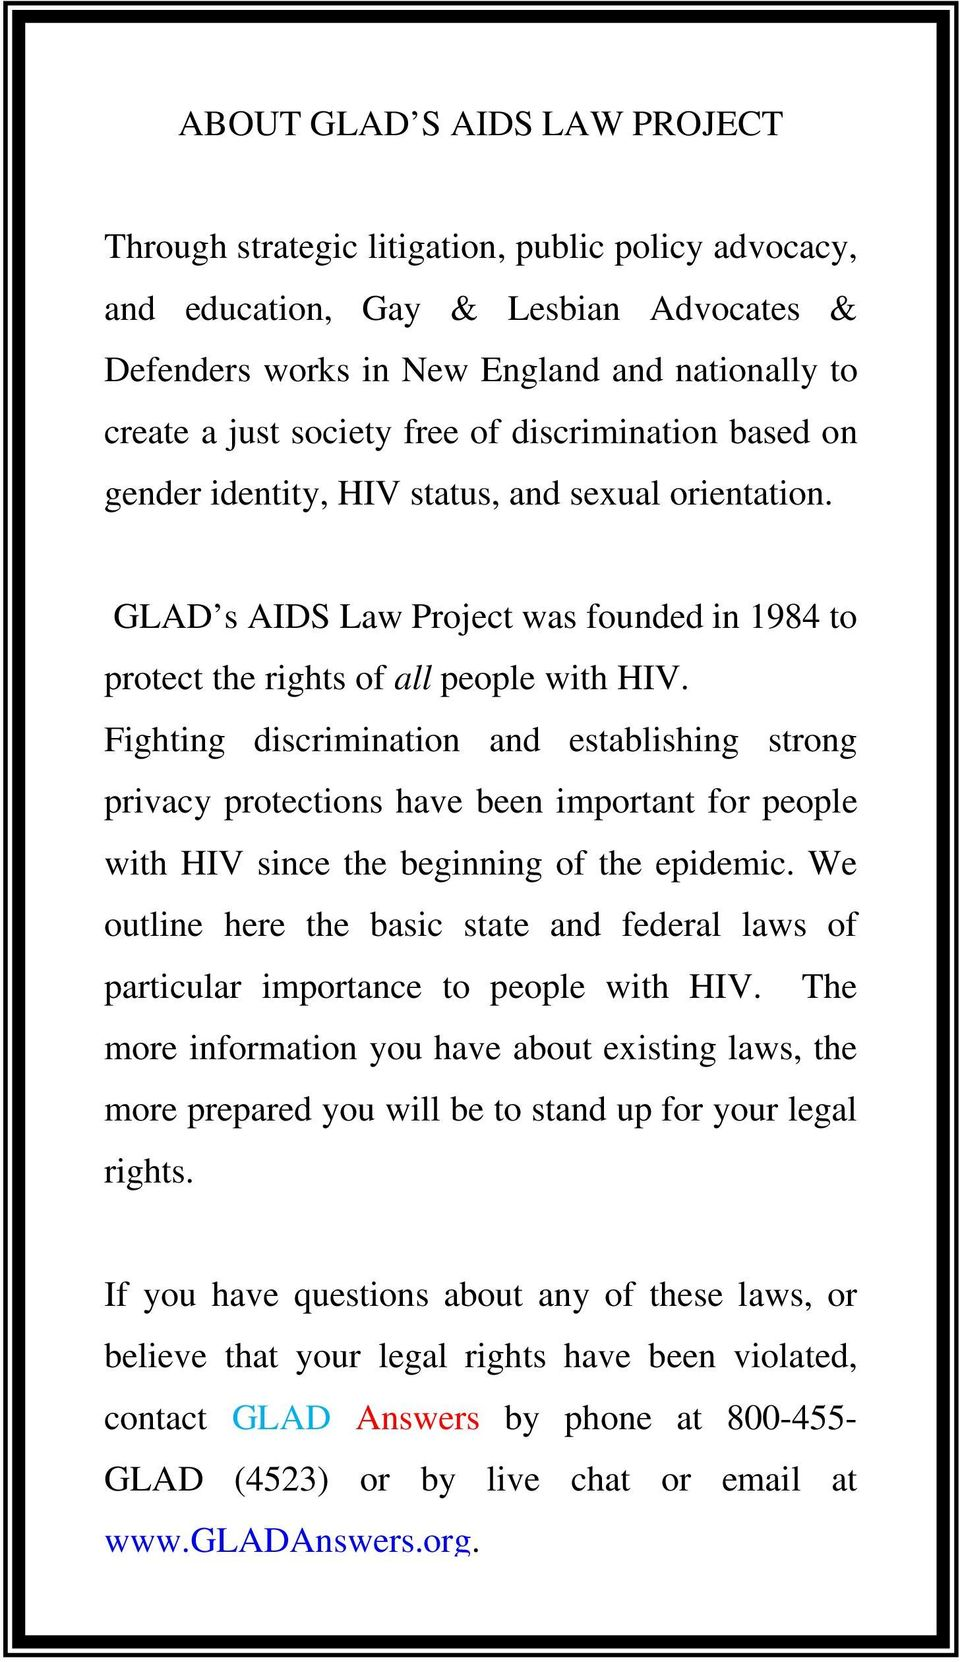 Fighting discrimination and establishing strong privacy protections have been important for people with HIV since the beginning of the epidemic.